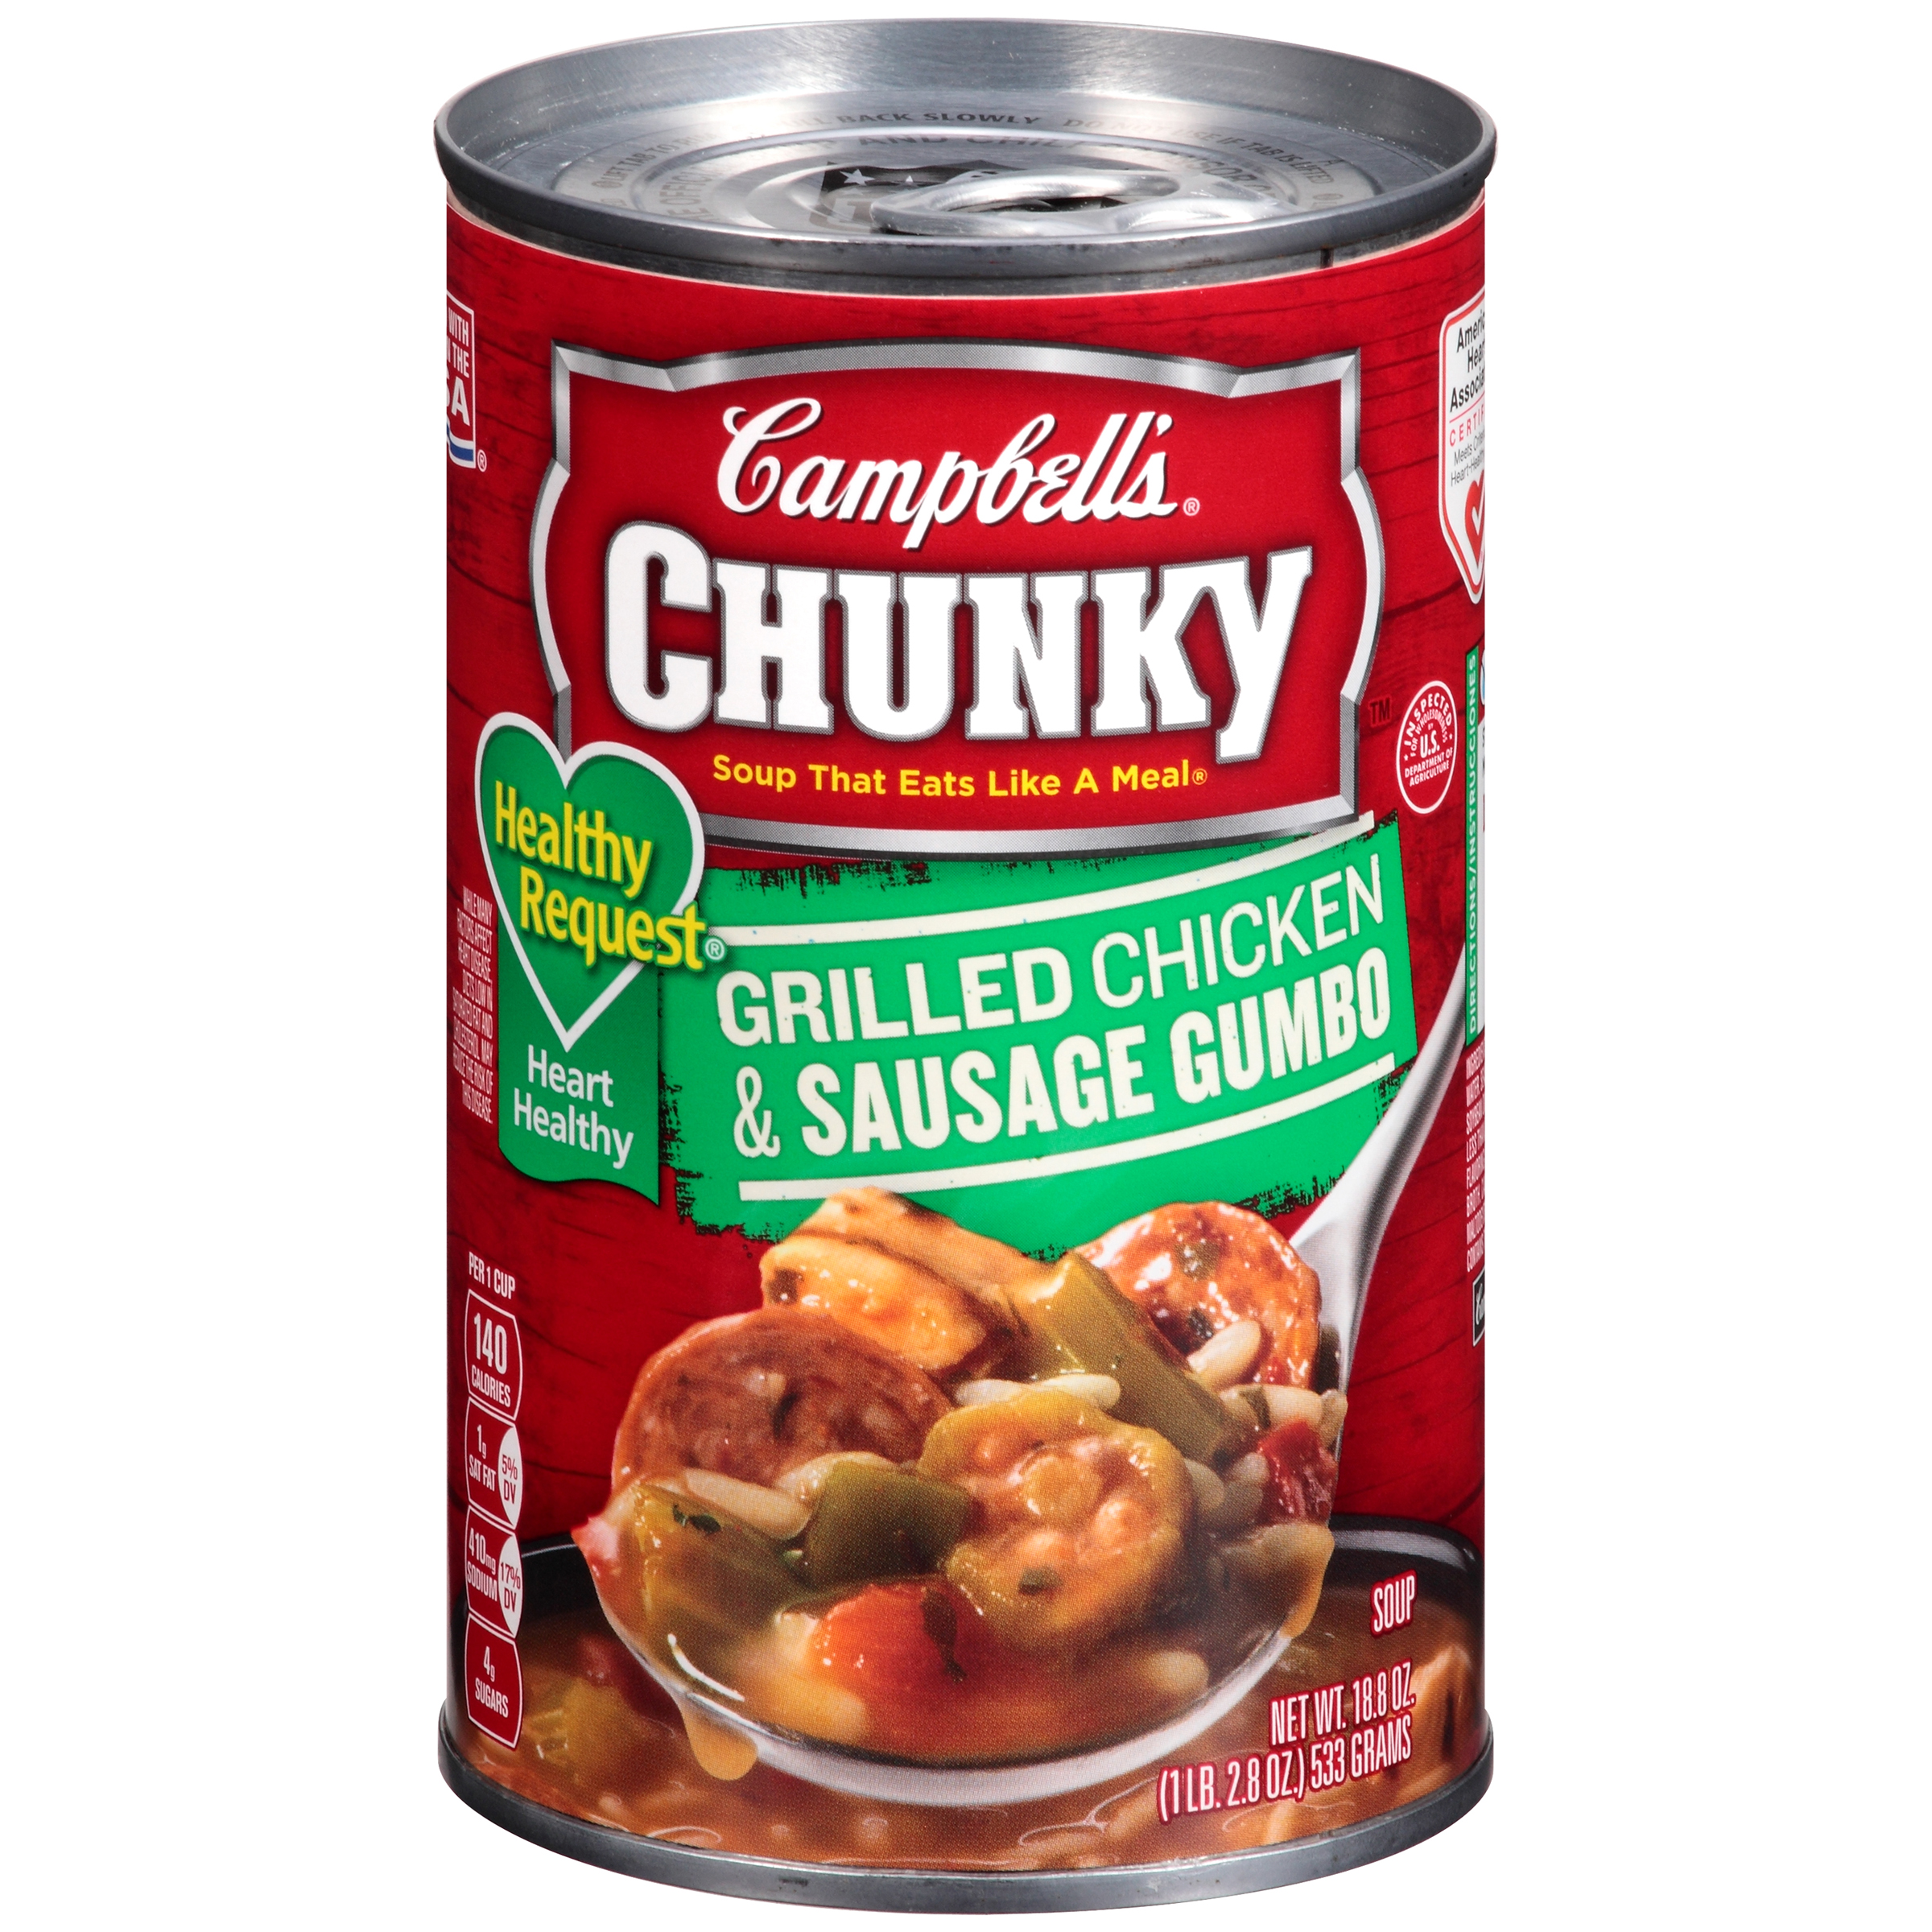 Campbell's Chunky Healthy Request Grilled Chicken & Sausage Gumbo Soup 18.8oz